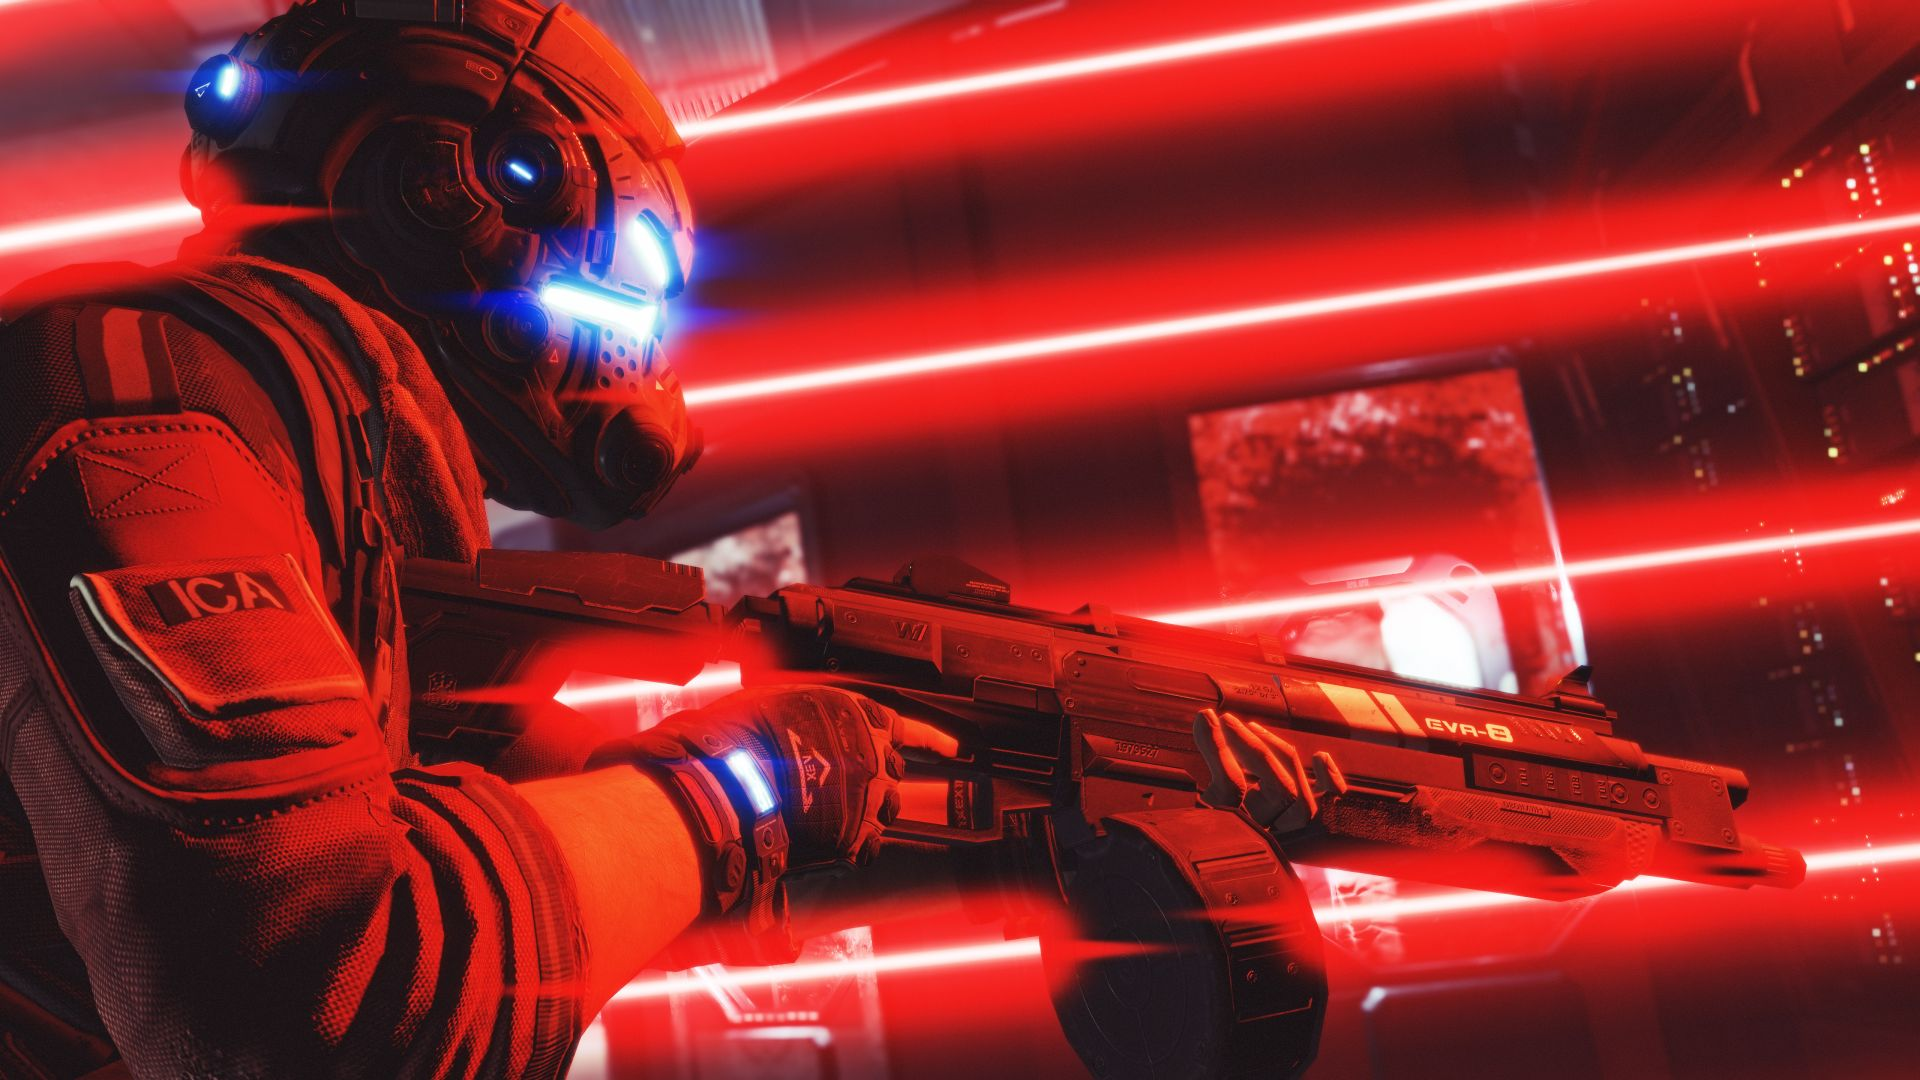 Wallpaper Titanfall 2 soldier in red light